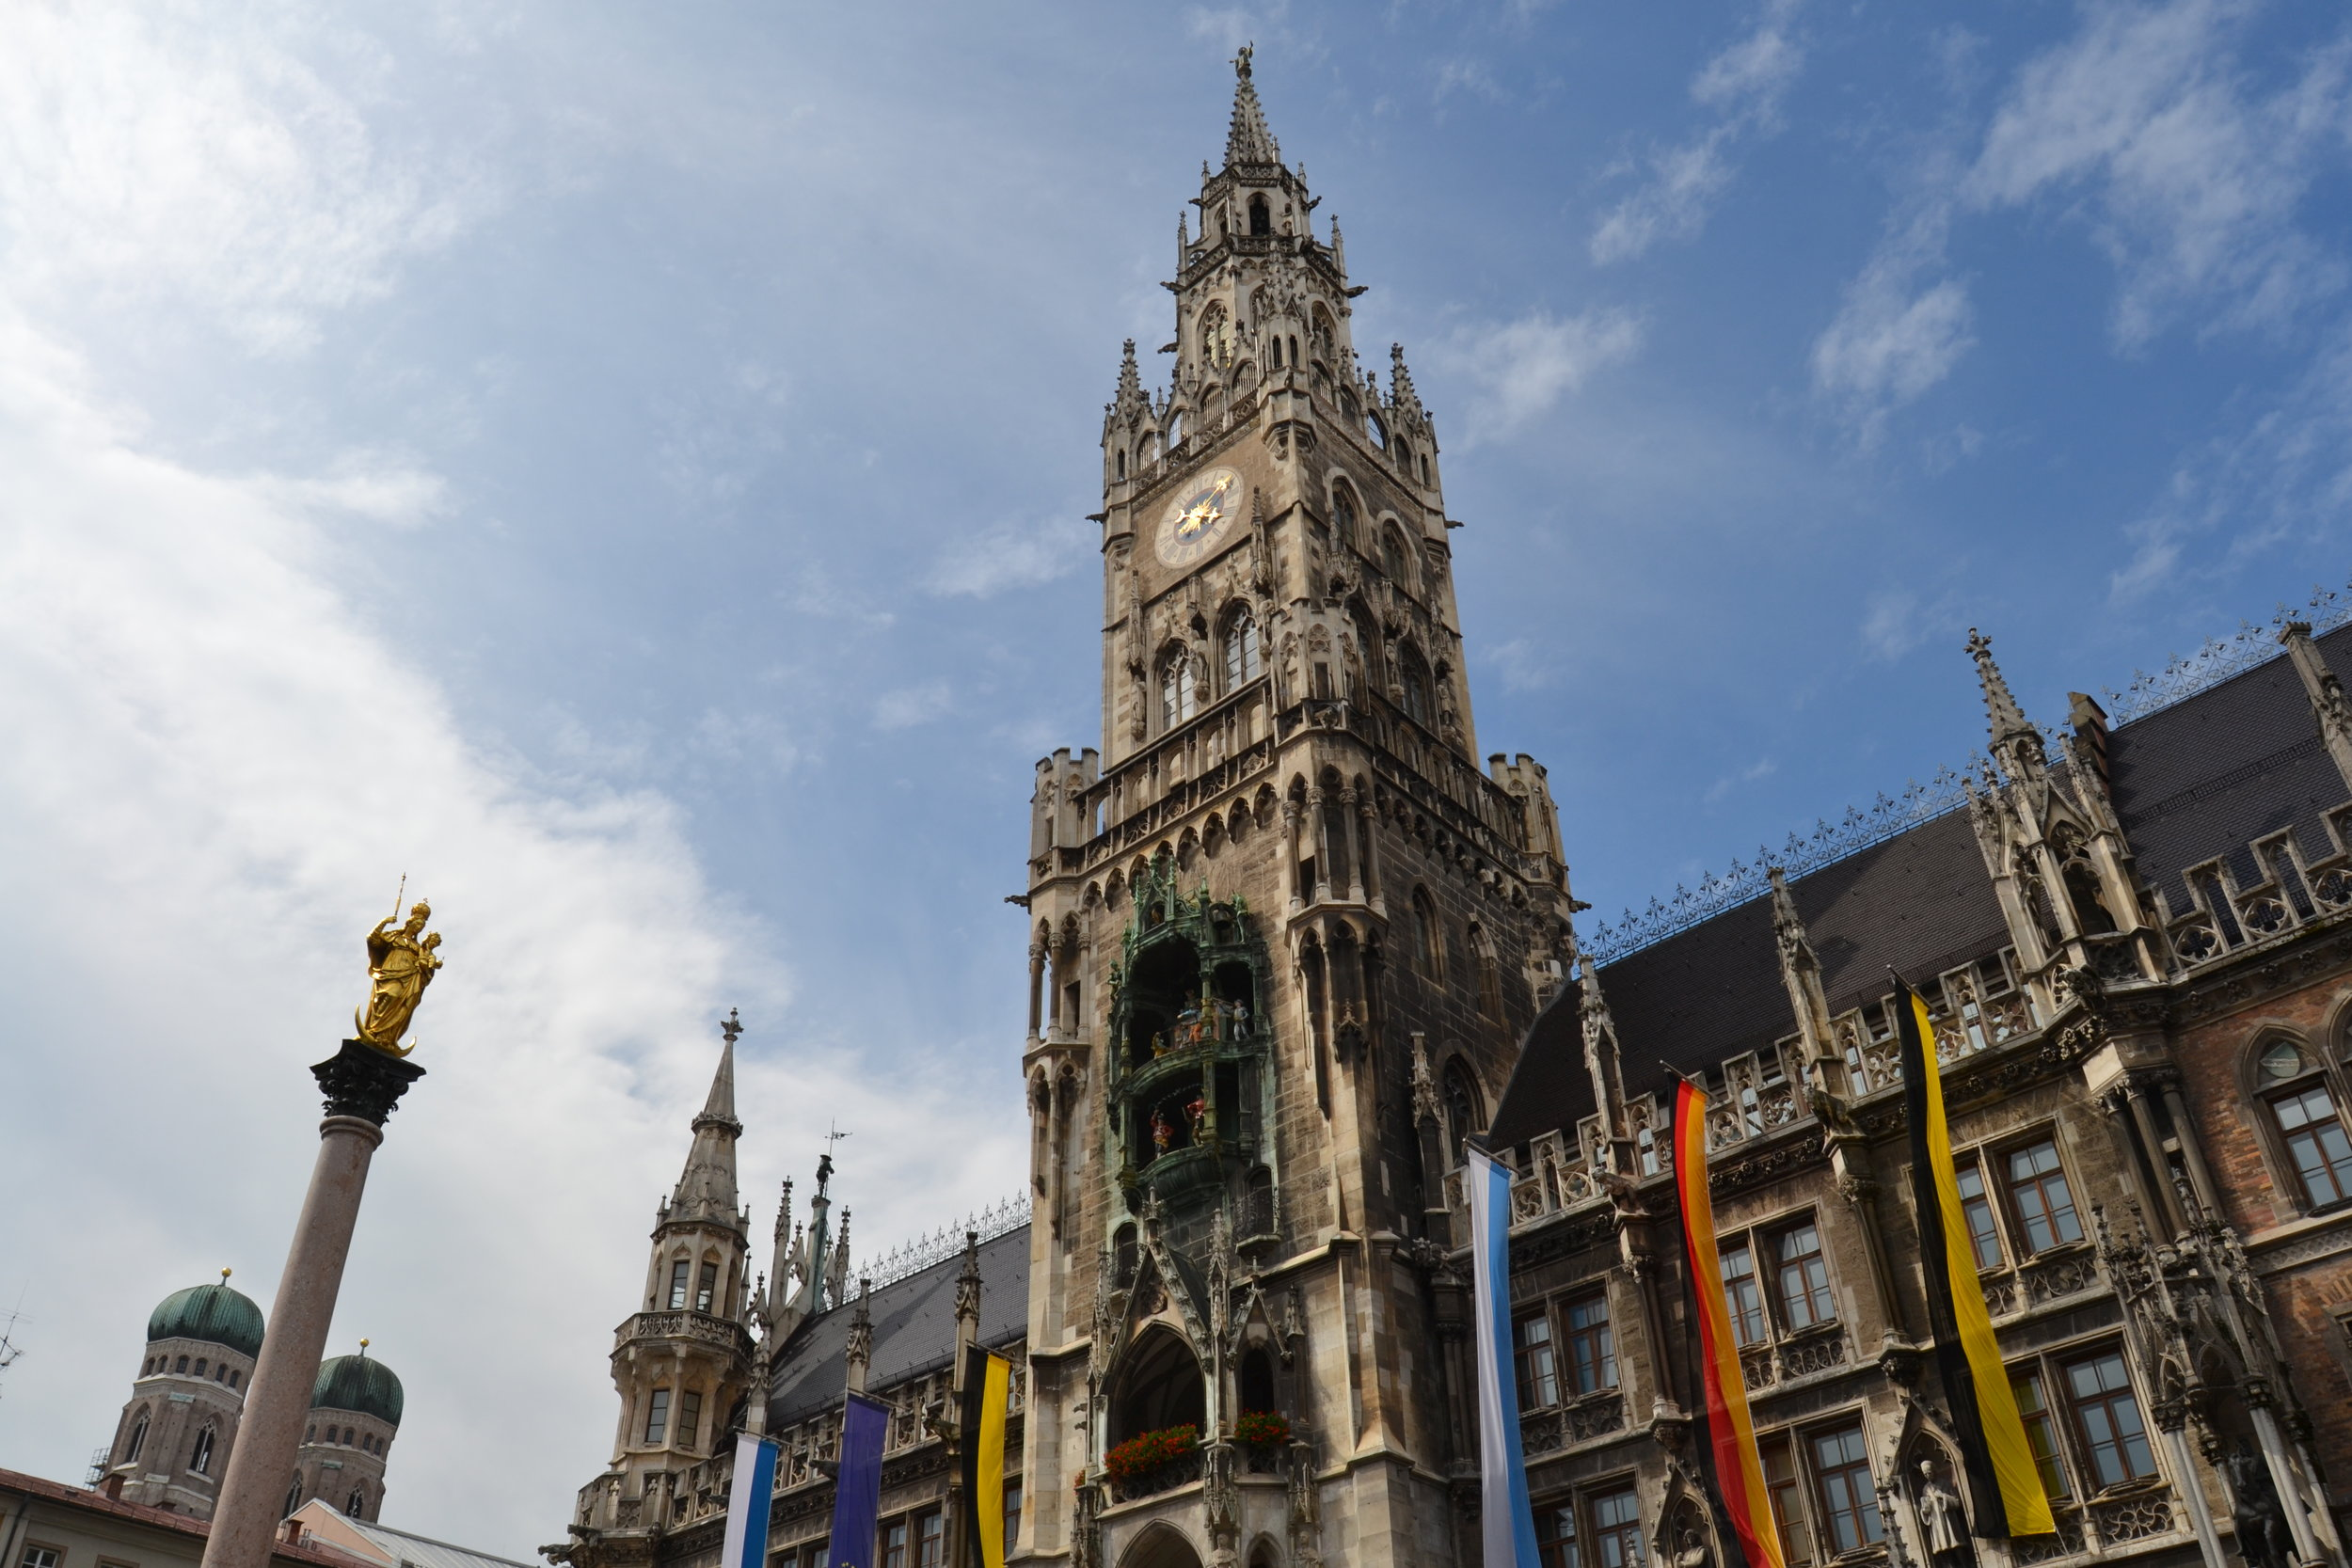 Marienplatz with the two towers of the Frauenkirche in the background.